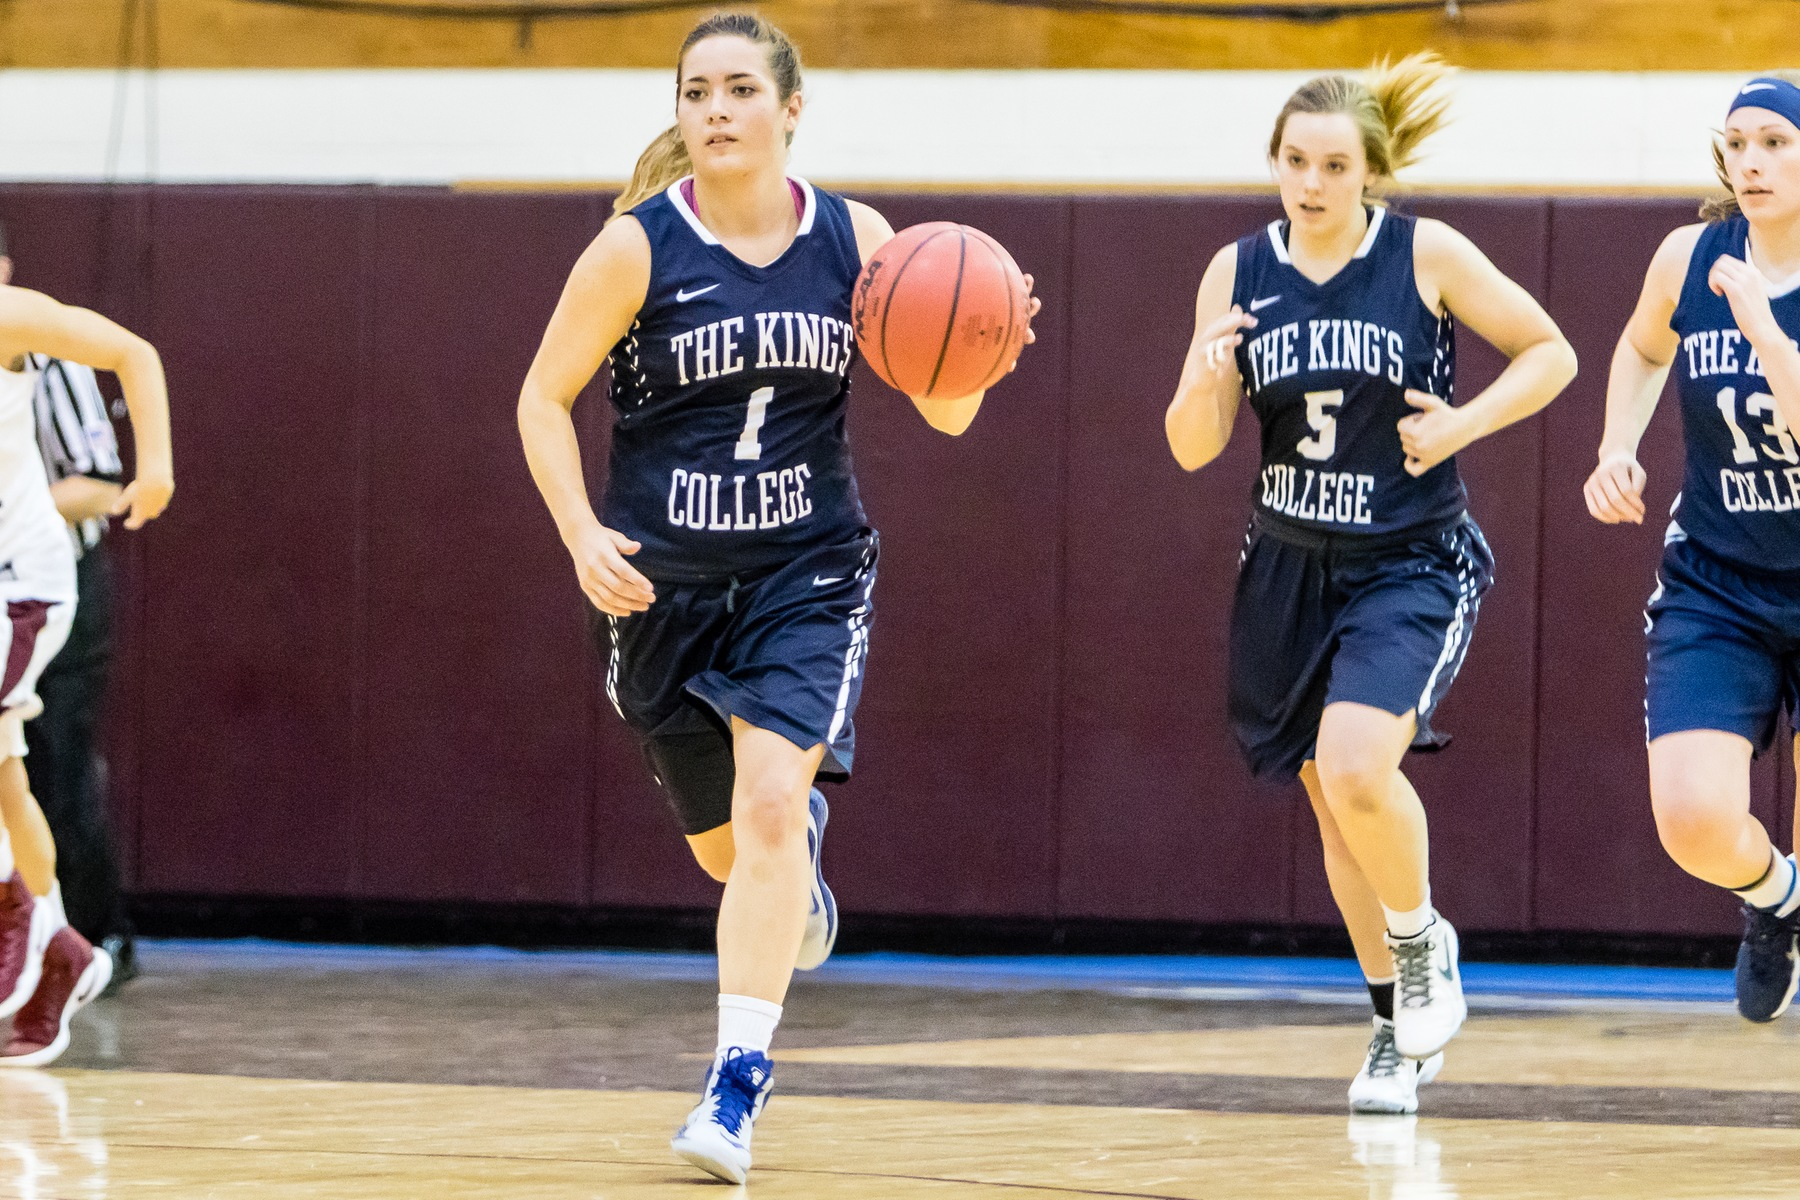 Women's Basketball Comes Up Short To Pratt